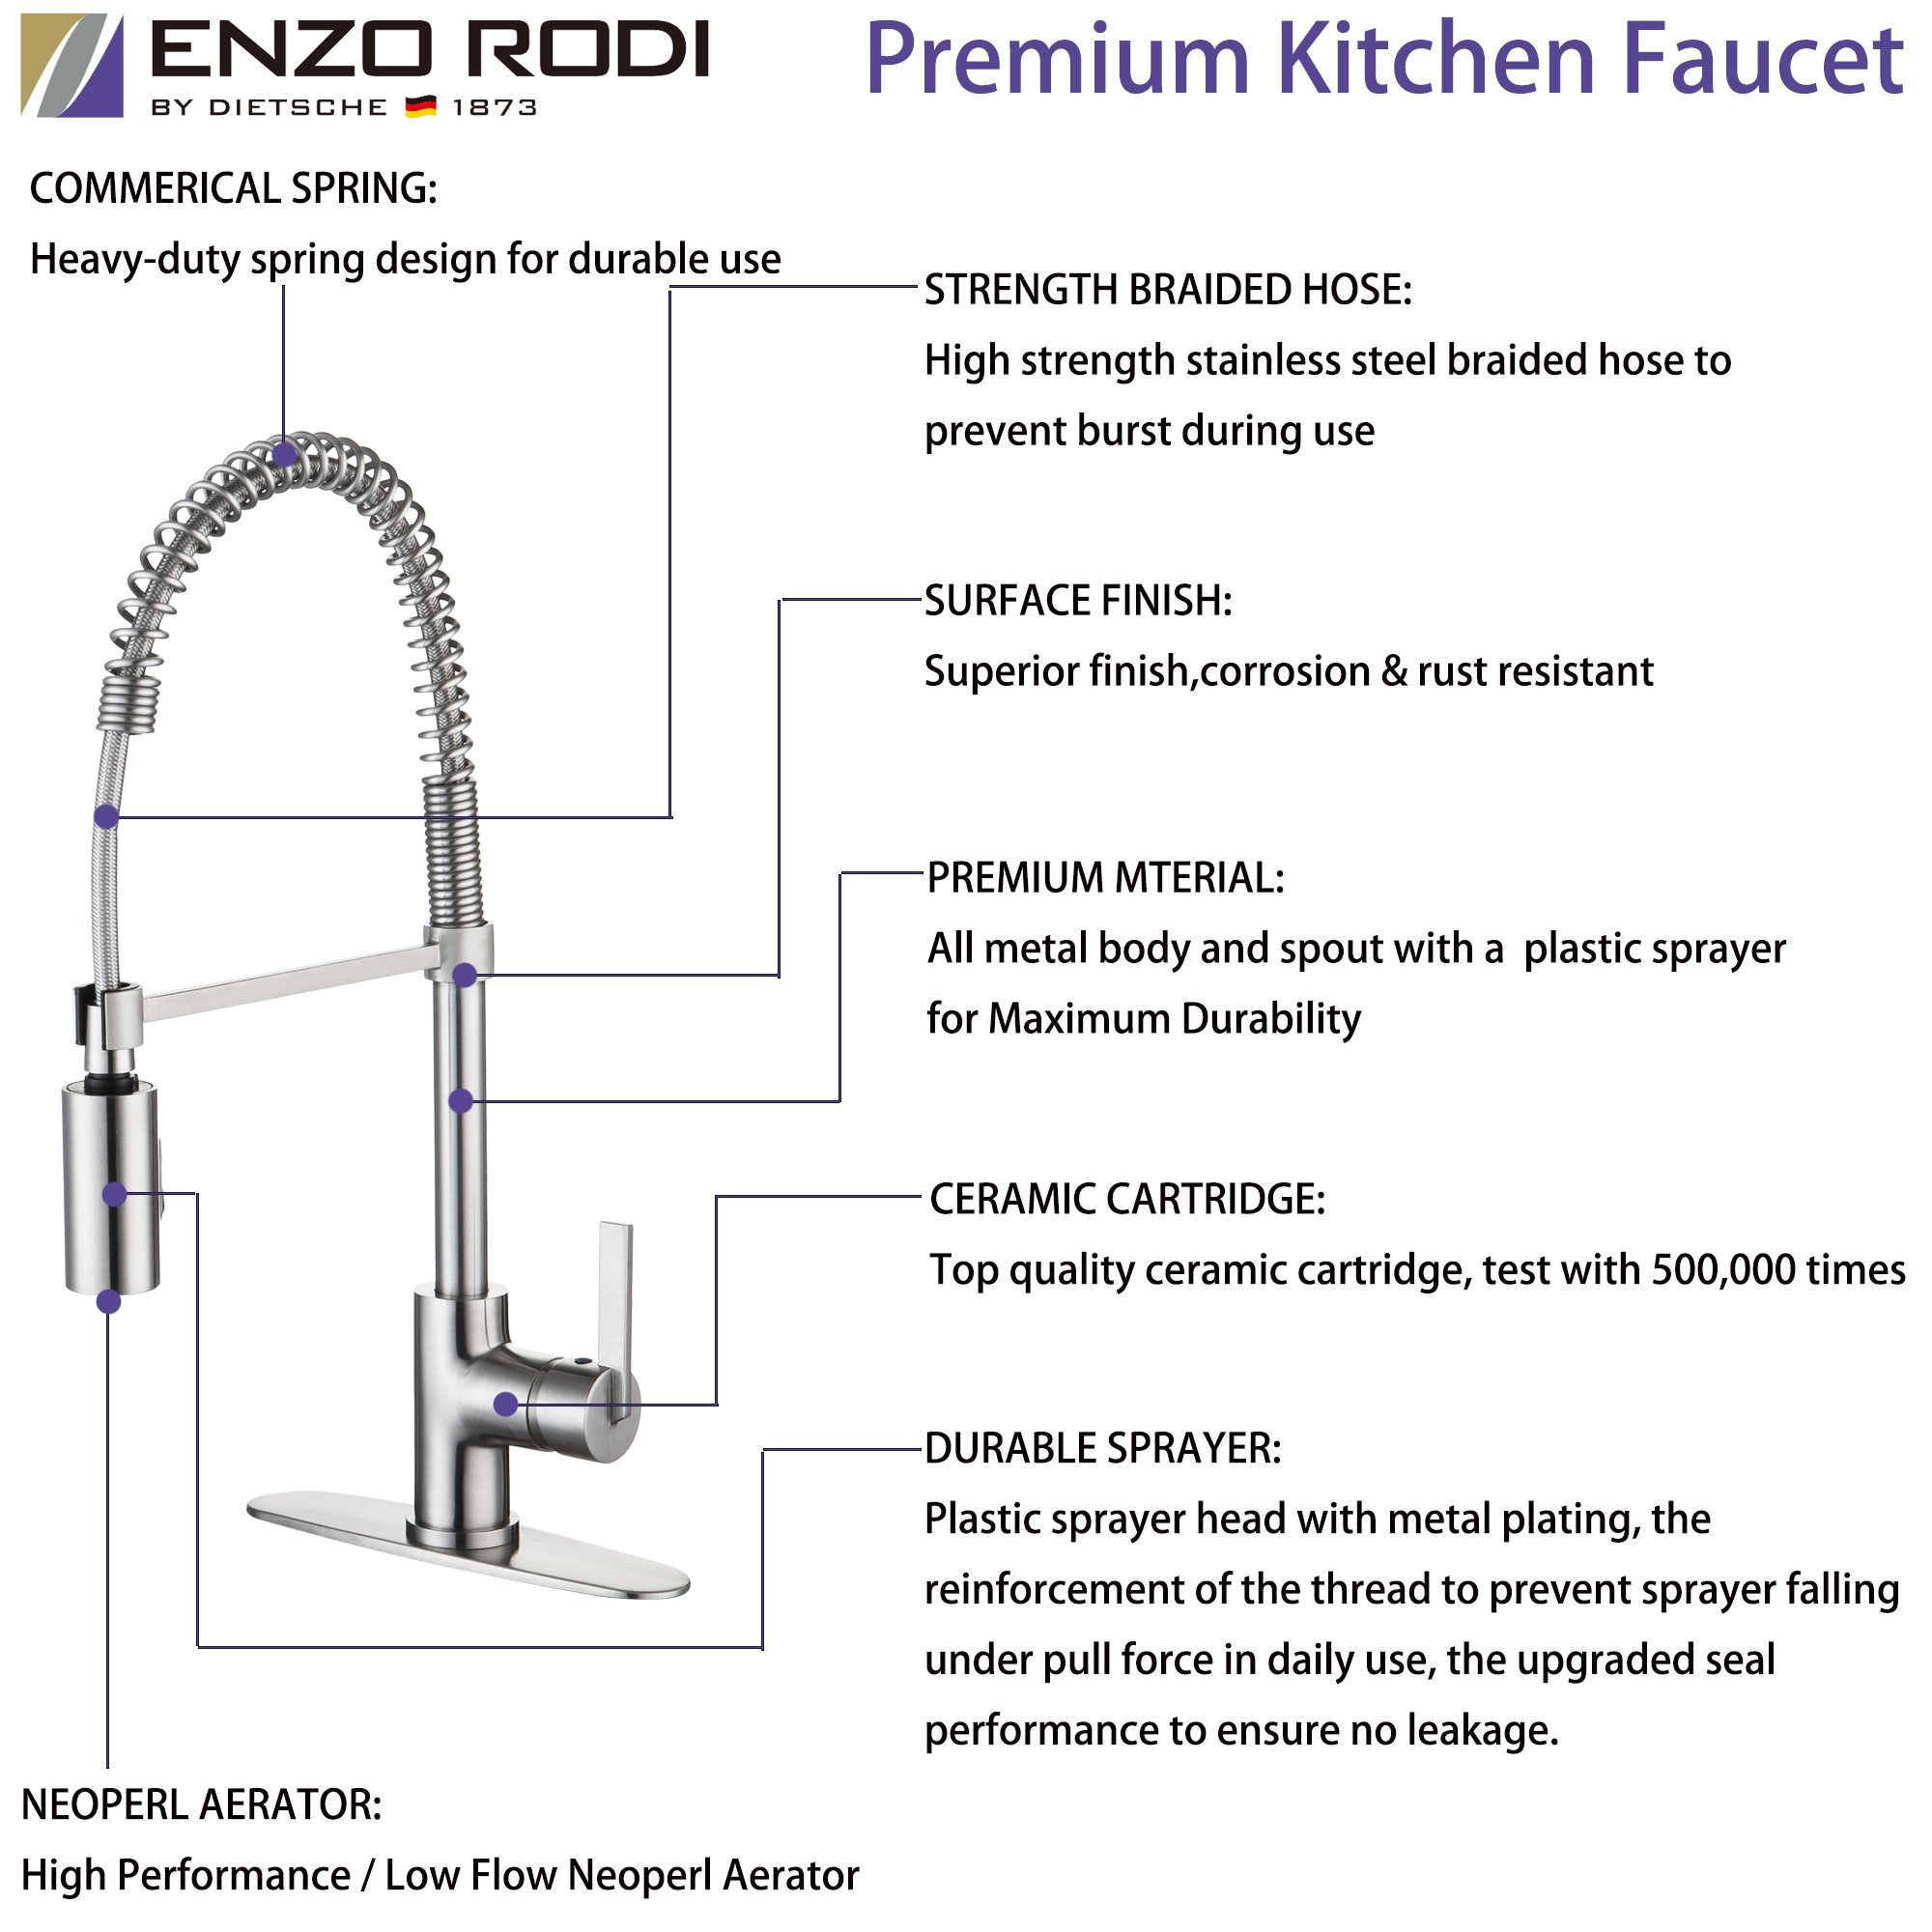 pdx kohler reviews faucet sprayer side handle bv k spray commercial double cp kitchen wayfair with improvement home bn revival